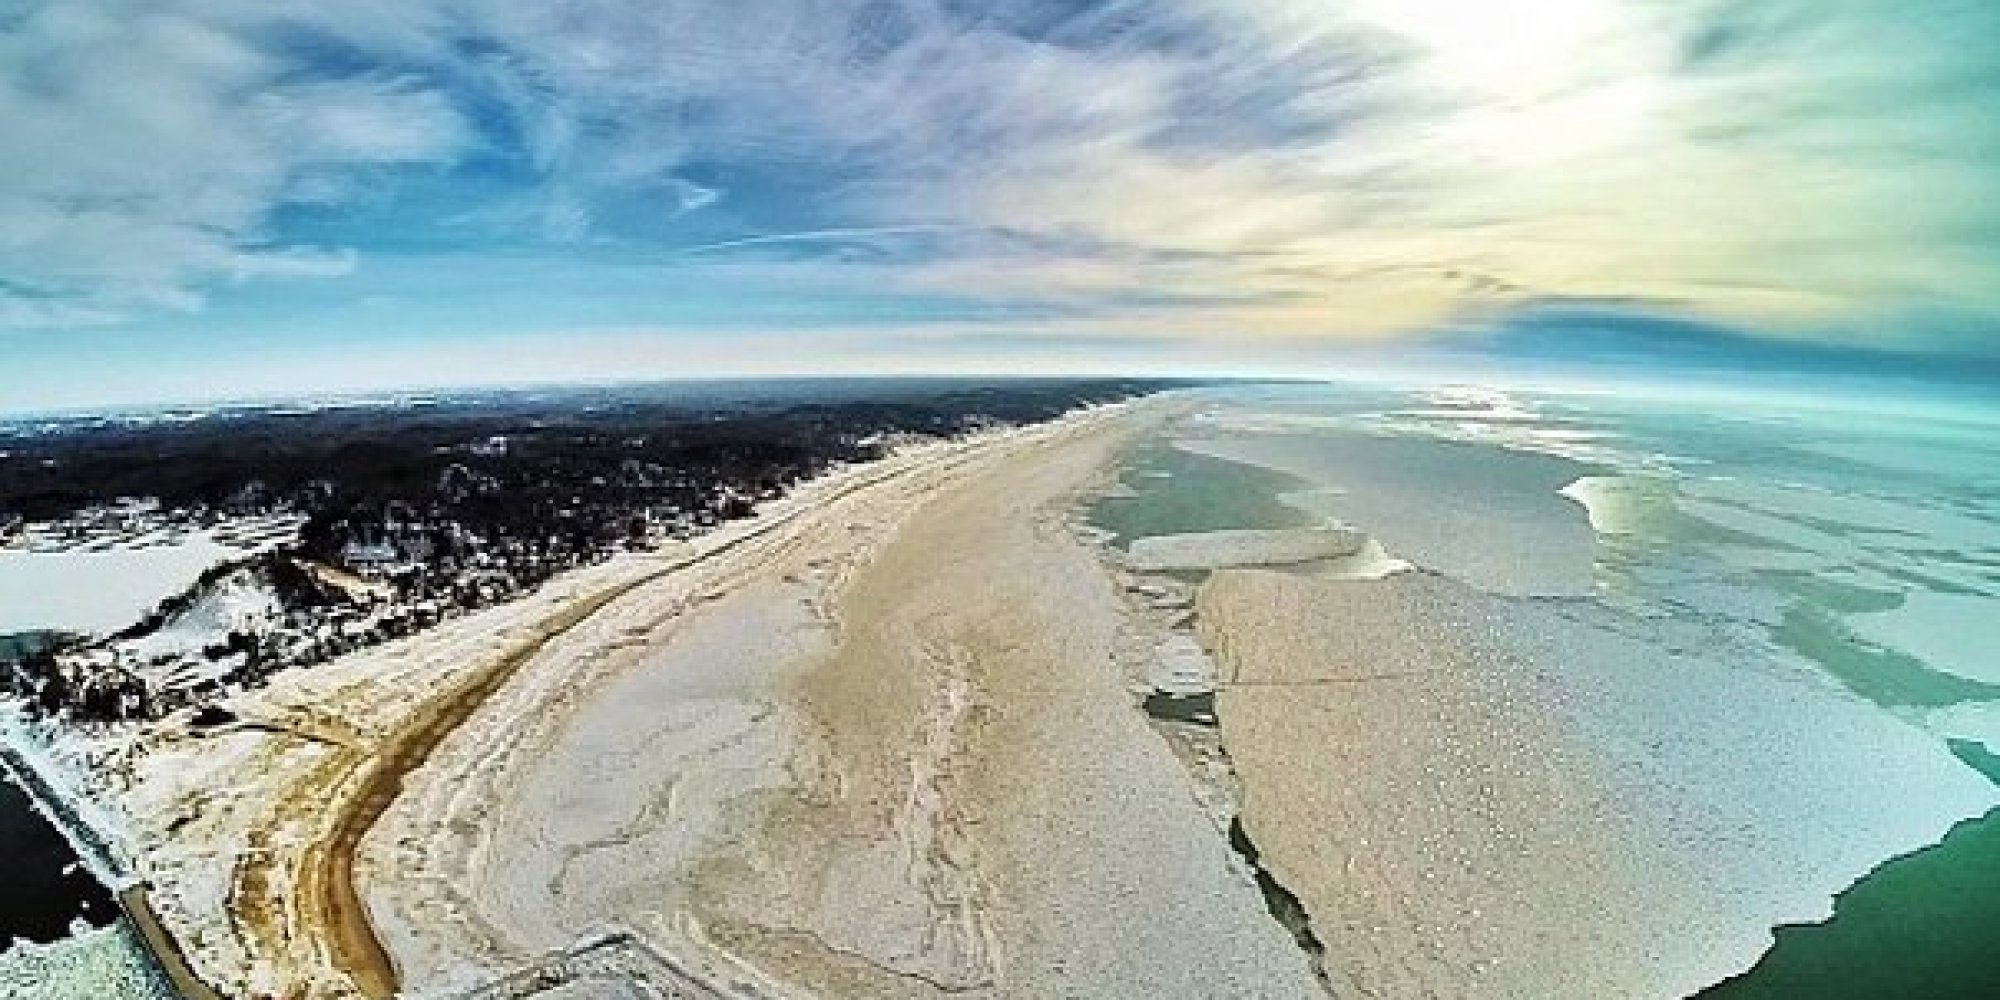 drone power edition with Frozen Lake Michigan N 4653546 on 10 Migliori Droni in addition 8th Edition Warhammer 40k Lineup Pricing Confrimed moreover 1095575 diesel Powered Chevrolet Colorado Zr2 Concept Crawls Into L A moreover Frozen Lake Michigan n 4653546 further Fantasia Hairstyles Latest Photos.